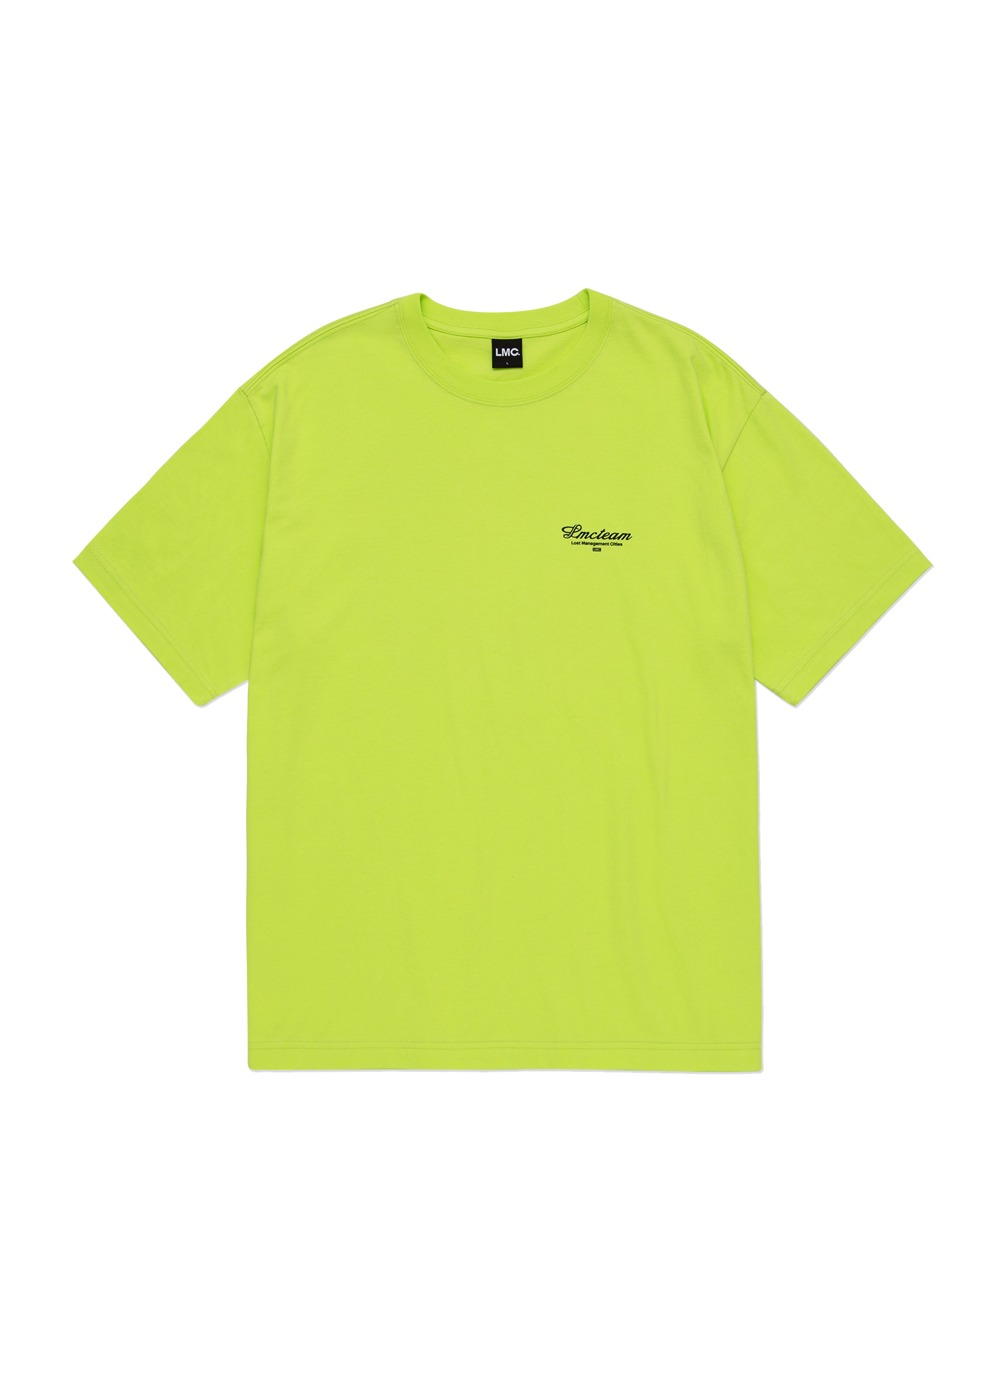 LMC TEAM EARTH ORGANIC TEE light green